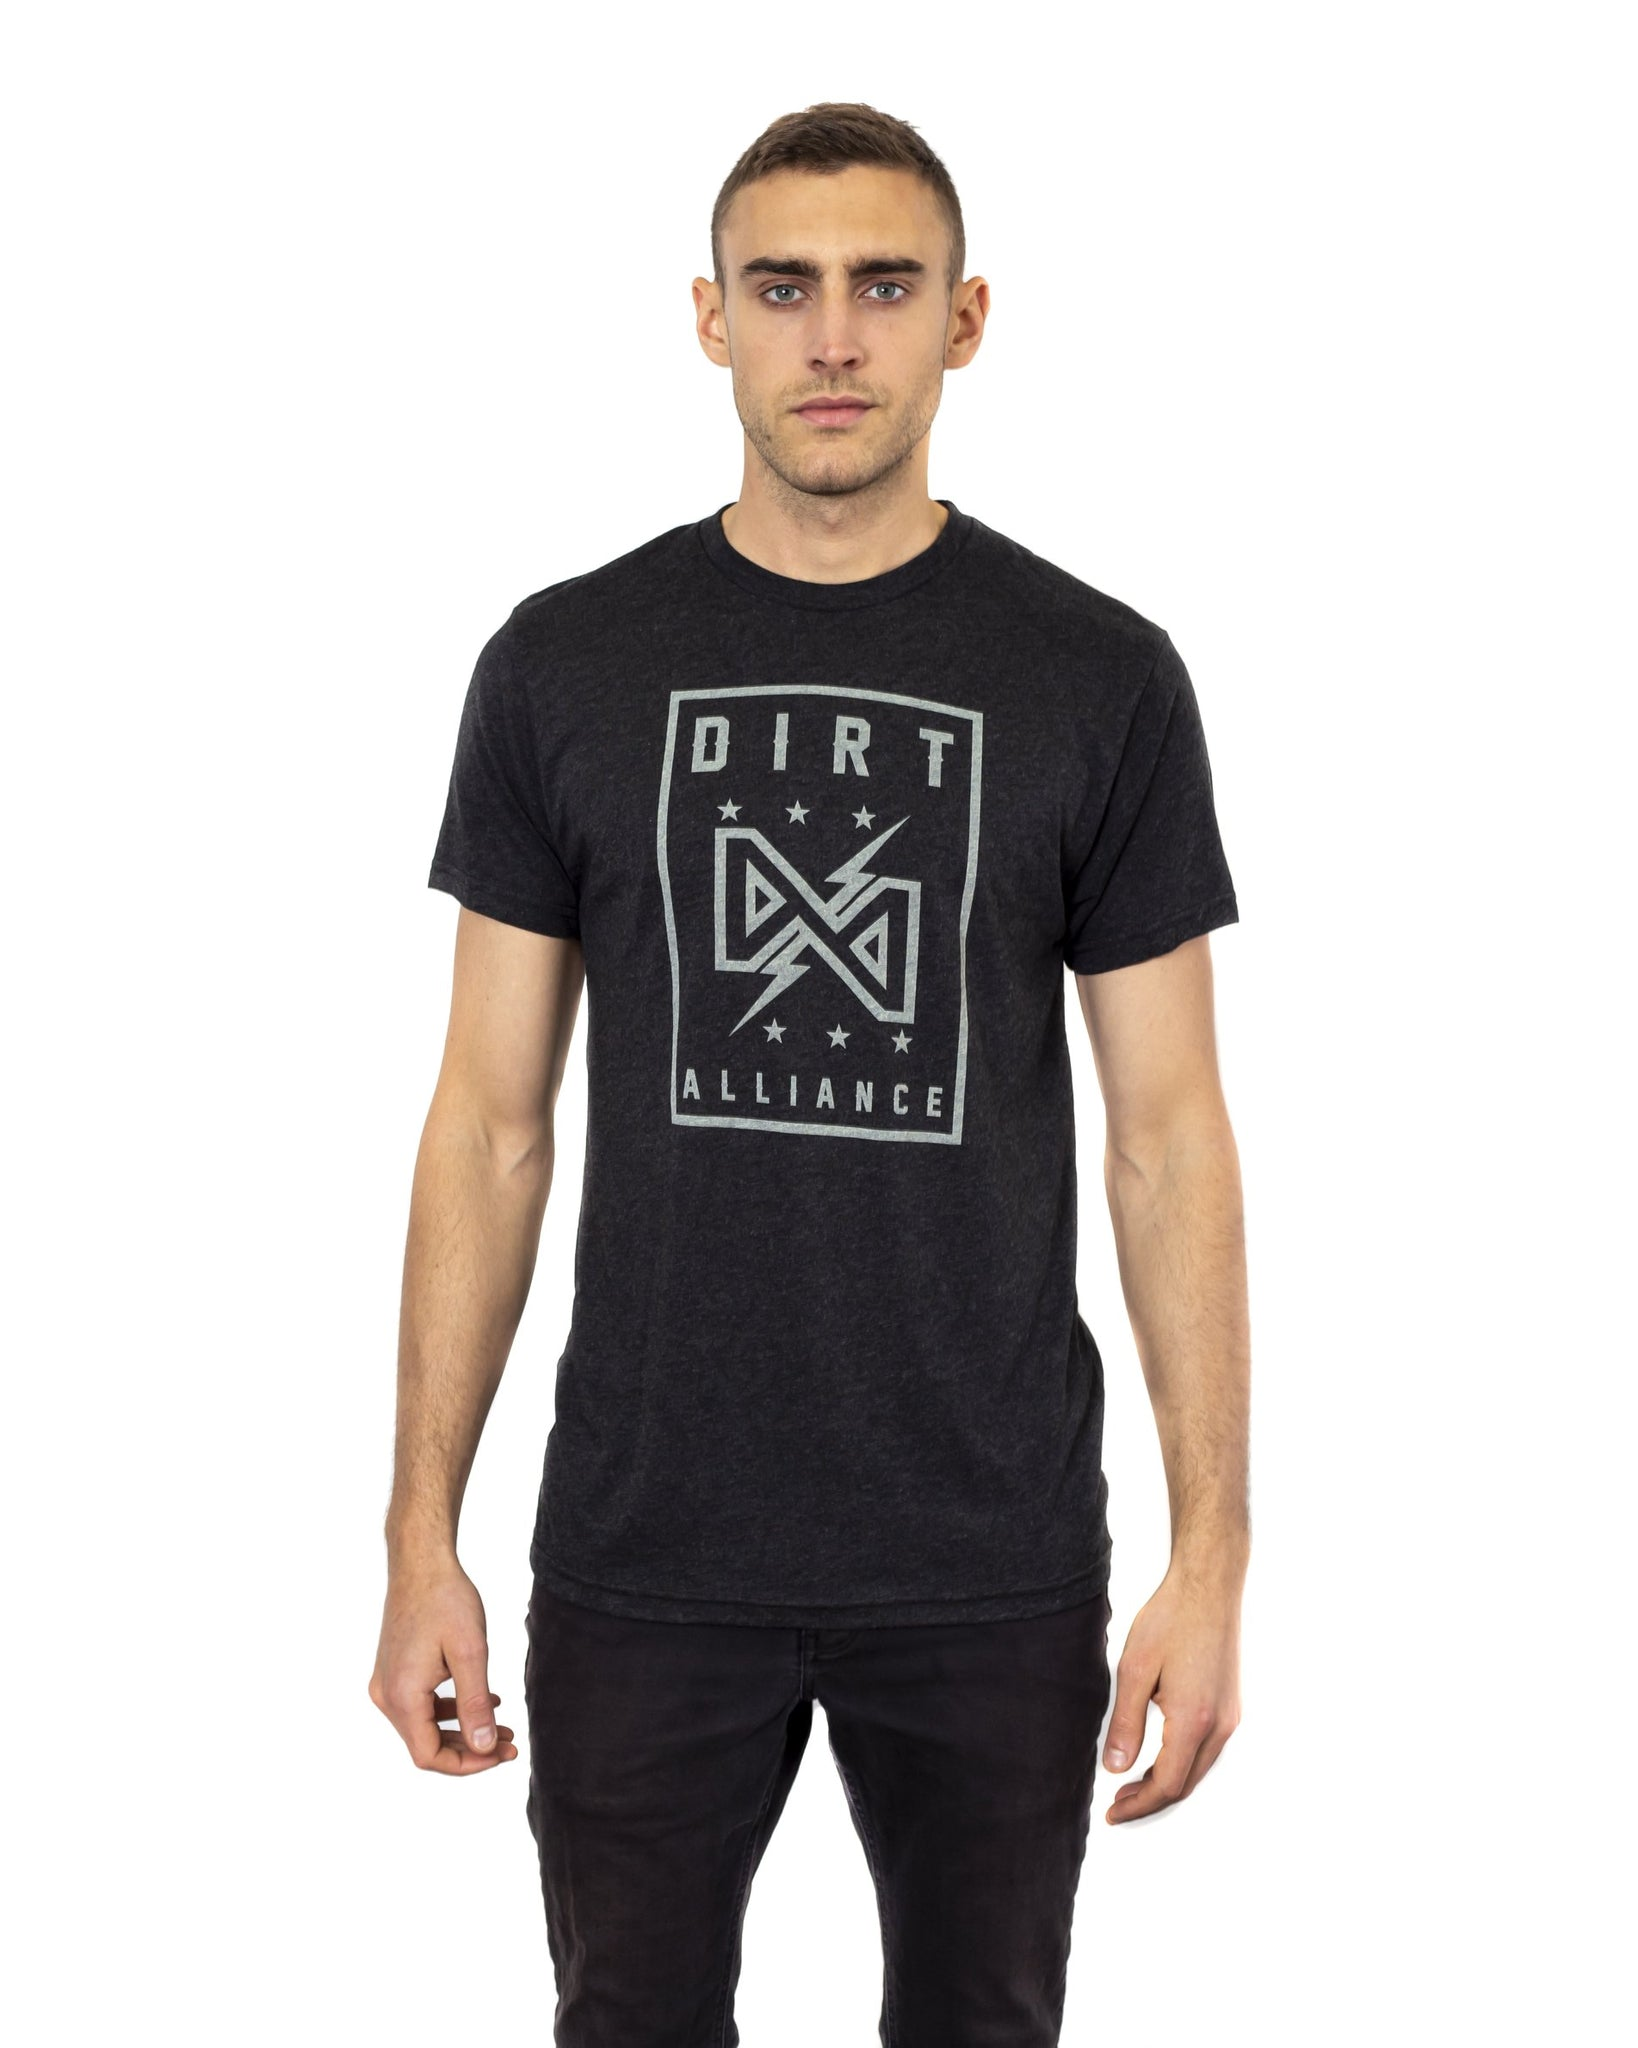 Dirt Alliance Label Me T-Shirt - Black